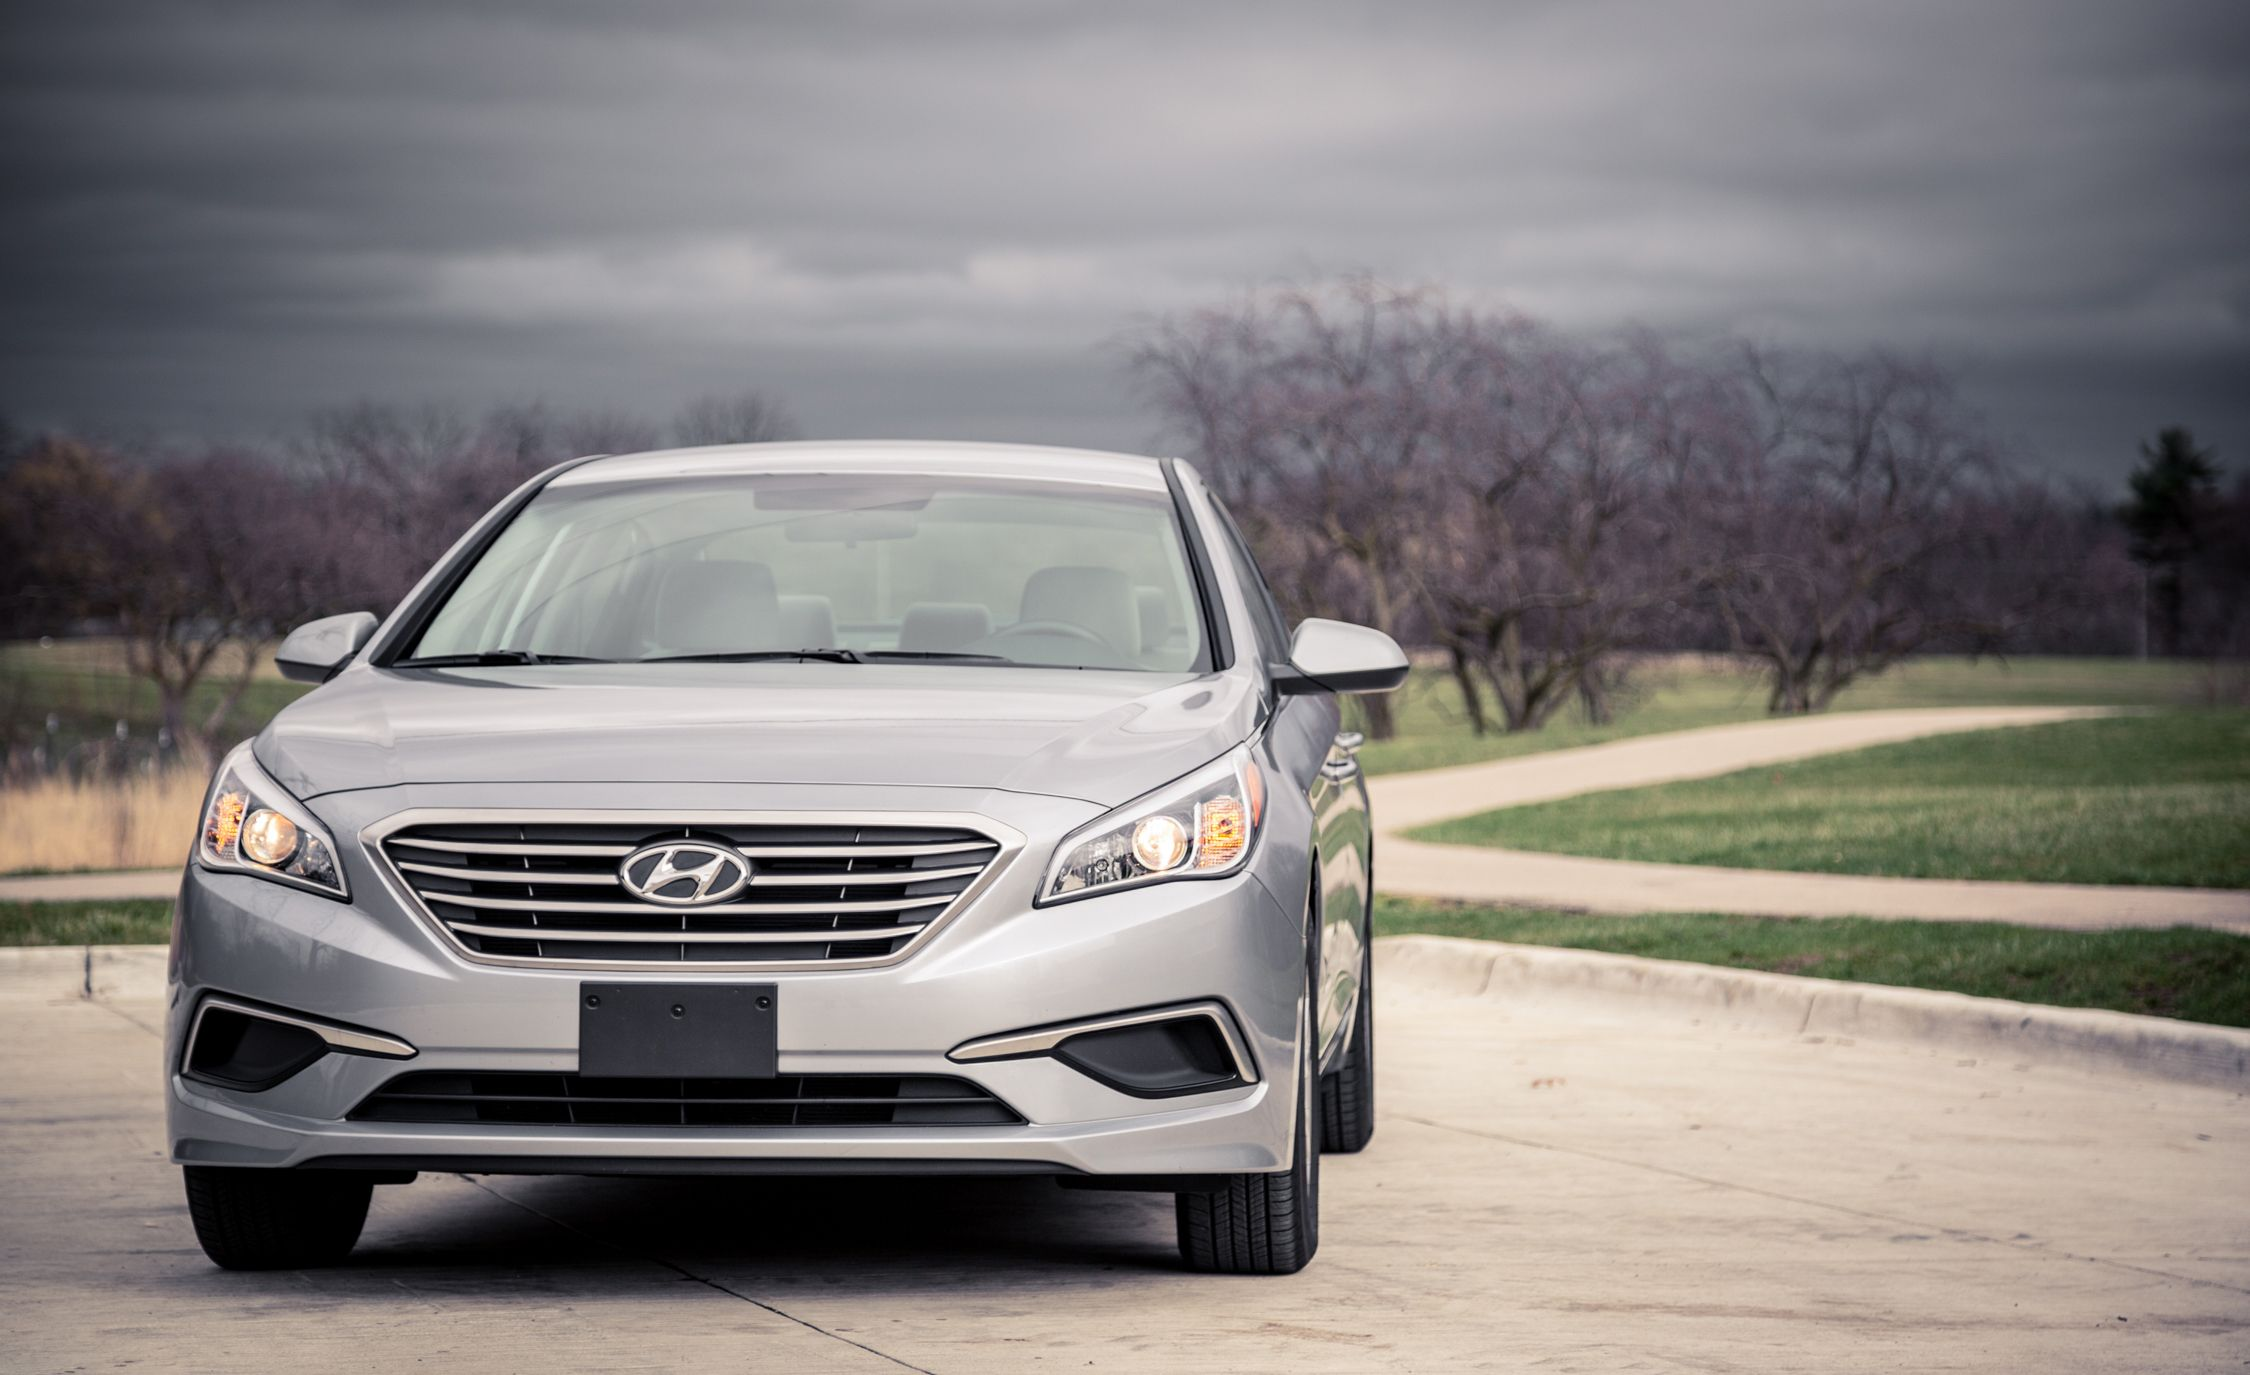 2017 hyundai sonata engine and transmission review car and driver. Black Bedroom Furniture Sets. Home Design Ideas